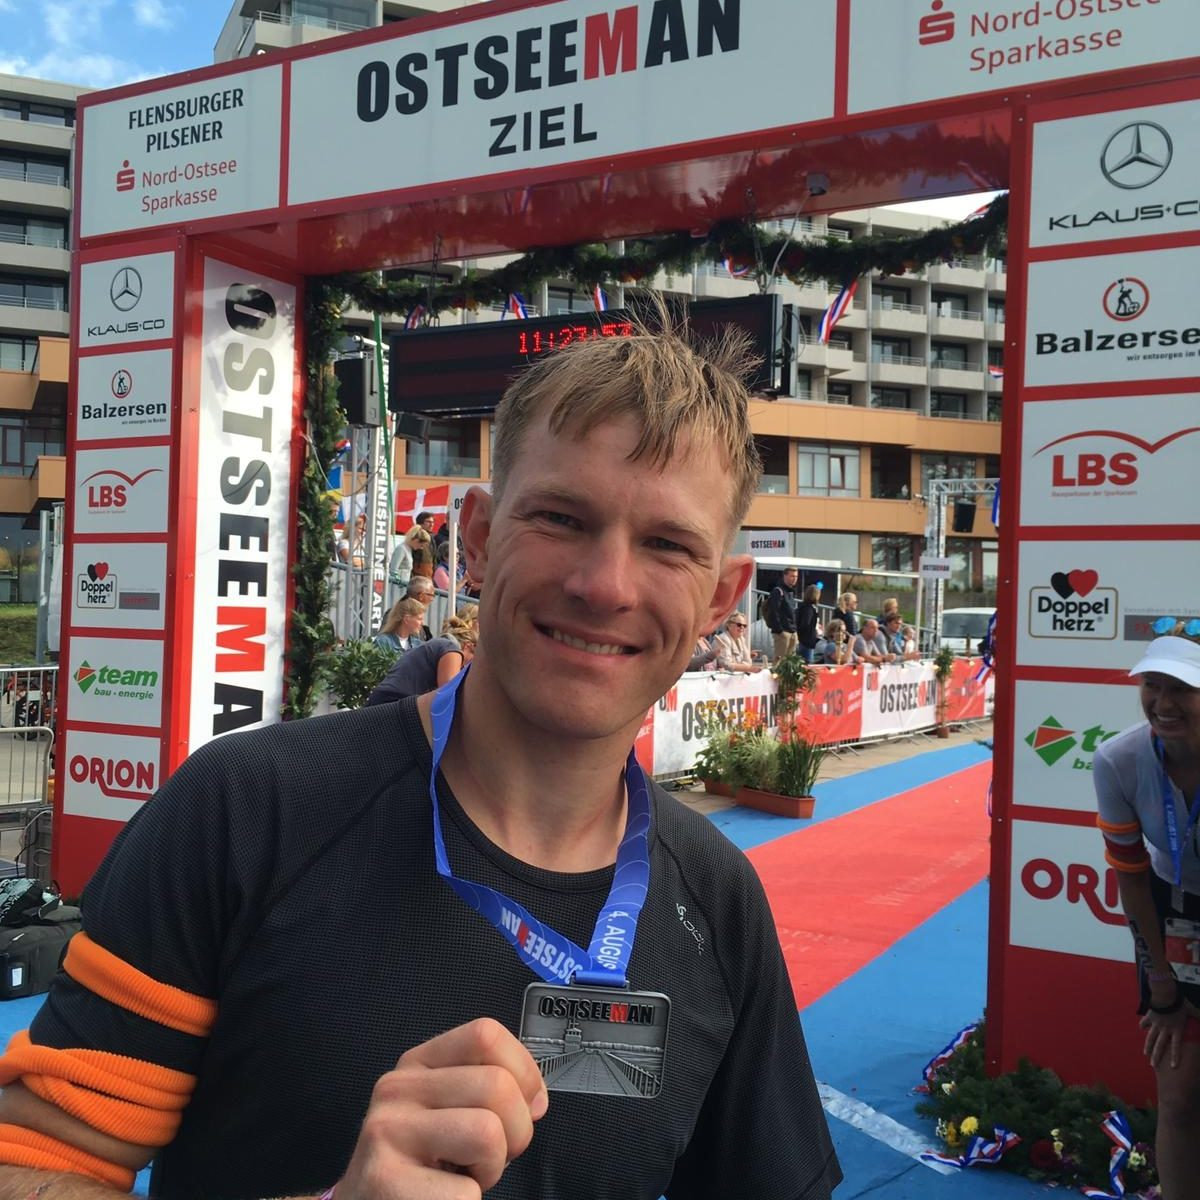 Triathlon Ironman - Ostseeman 2019